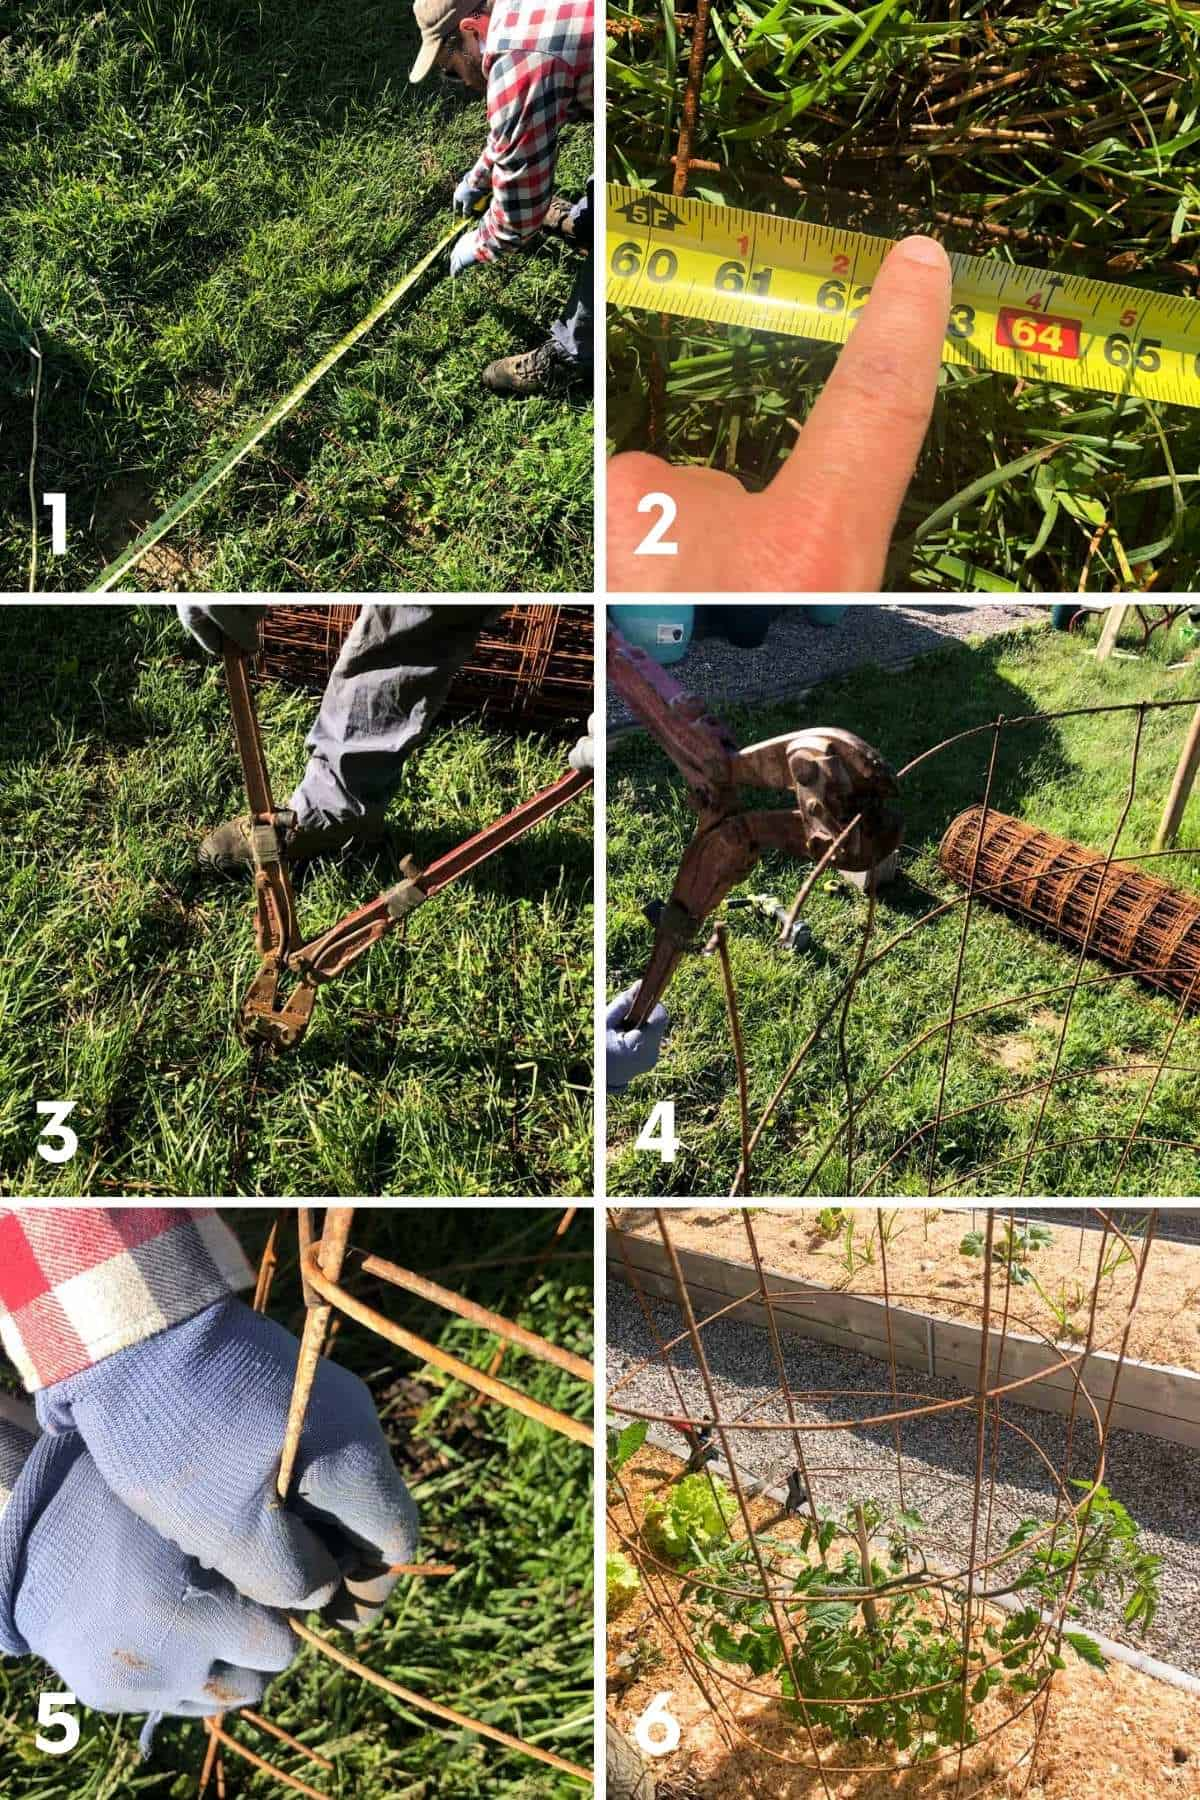 A collage image shows the steps for making a DIY tomato cage